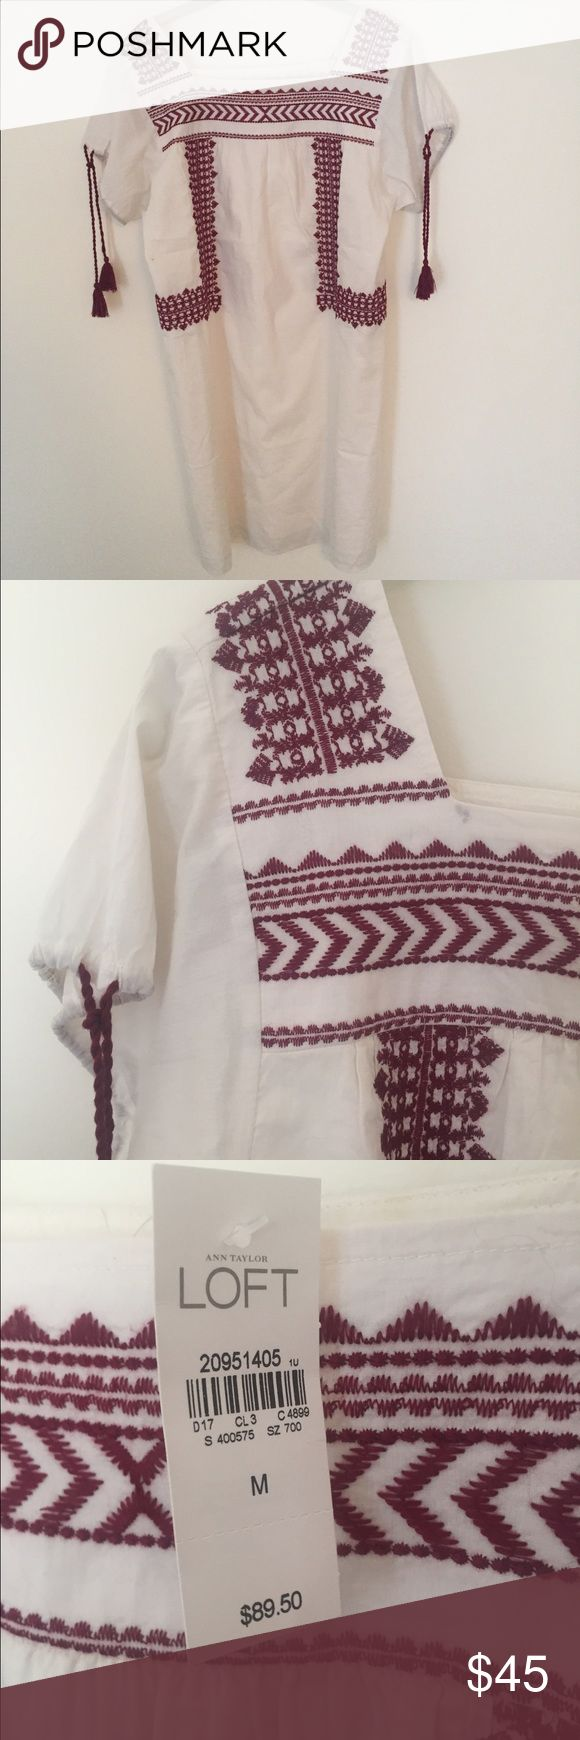 Loft Cotton Tunic Dress Loft Cotton Tunic shift dress with burgundy embroidered yolk and drawstrings on sleeves. Cream 100% Cotton. Lined. New with Tags. LOFT Dresses